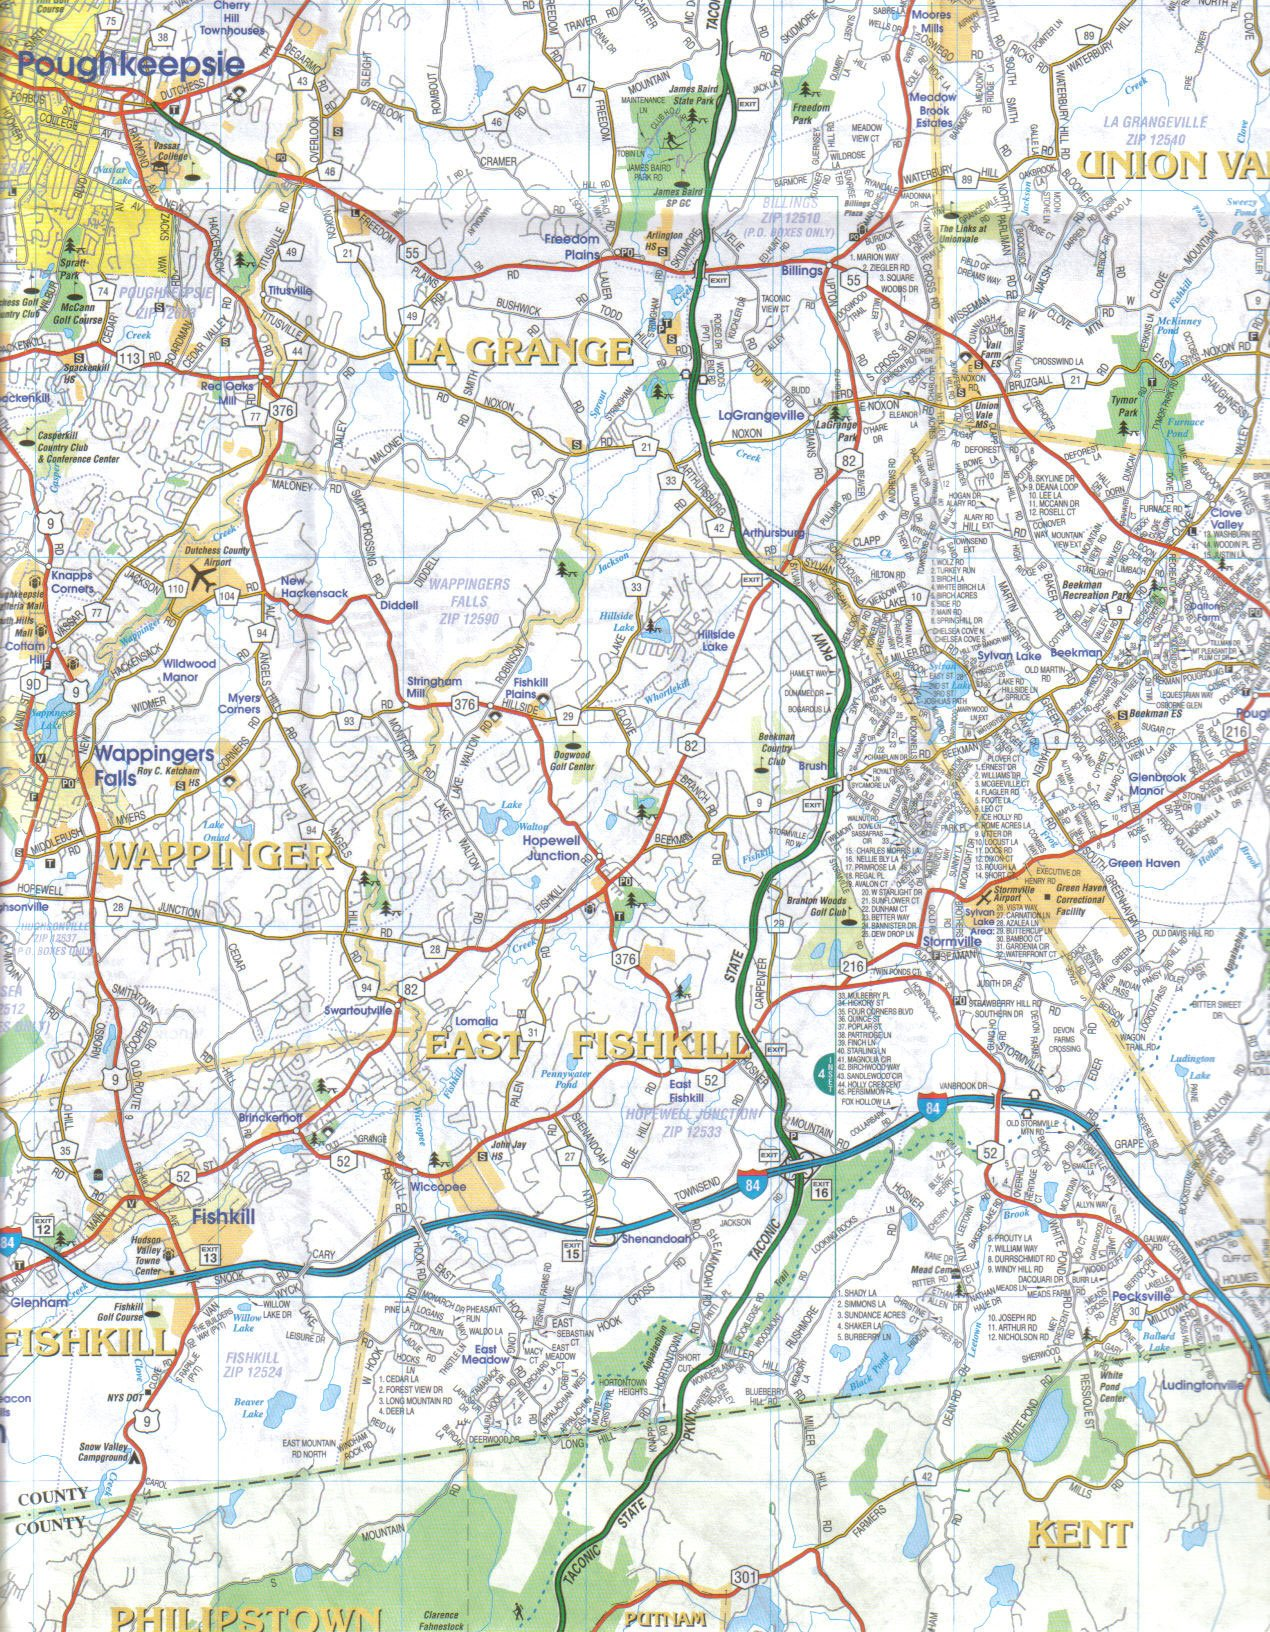 By Jimapco Dutchess County New York Street Road Map [Map ... on litchfield county ct map, cortland county map, greene county map, fairfield county map, town of poughkeepsie map, new castle county map, johnson county map, new york map, westchester county map, brooklyn map, rockland county map, fayette county map, dutchess new york, suffolk county map, schenectady county map, kauai county map, columbia county map, lincoln county map, ny map, orange county map,